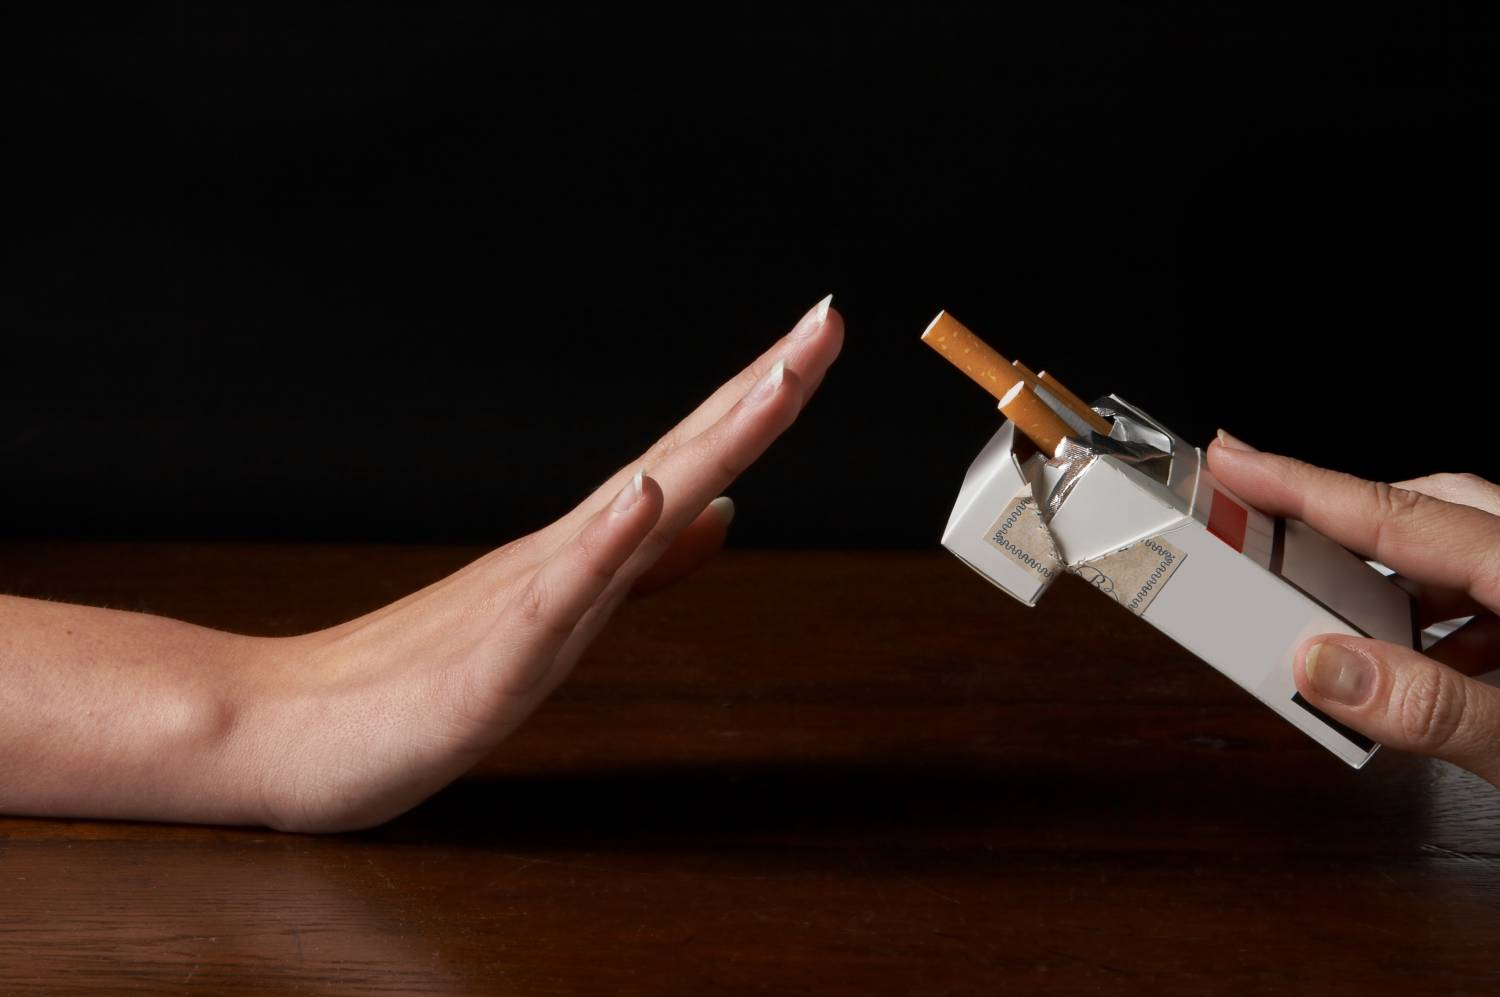 purchase cigarettes online Bond